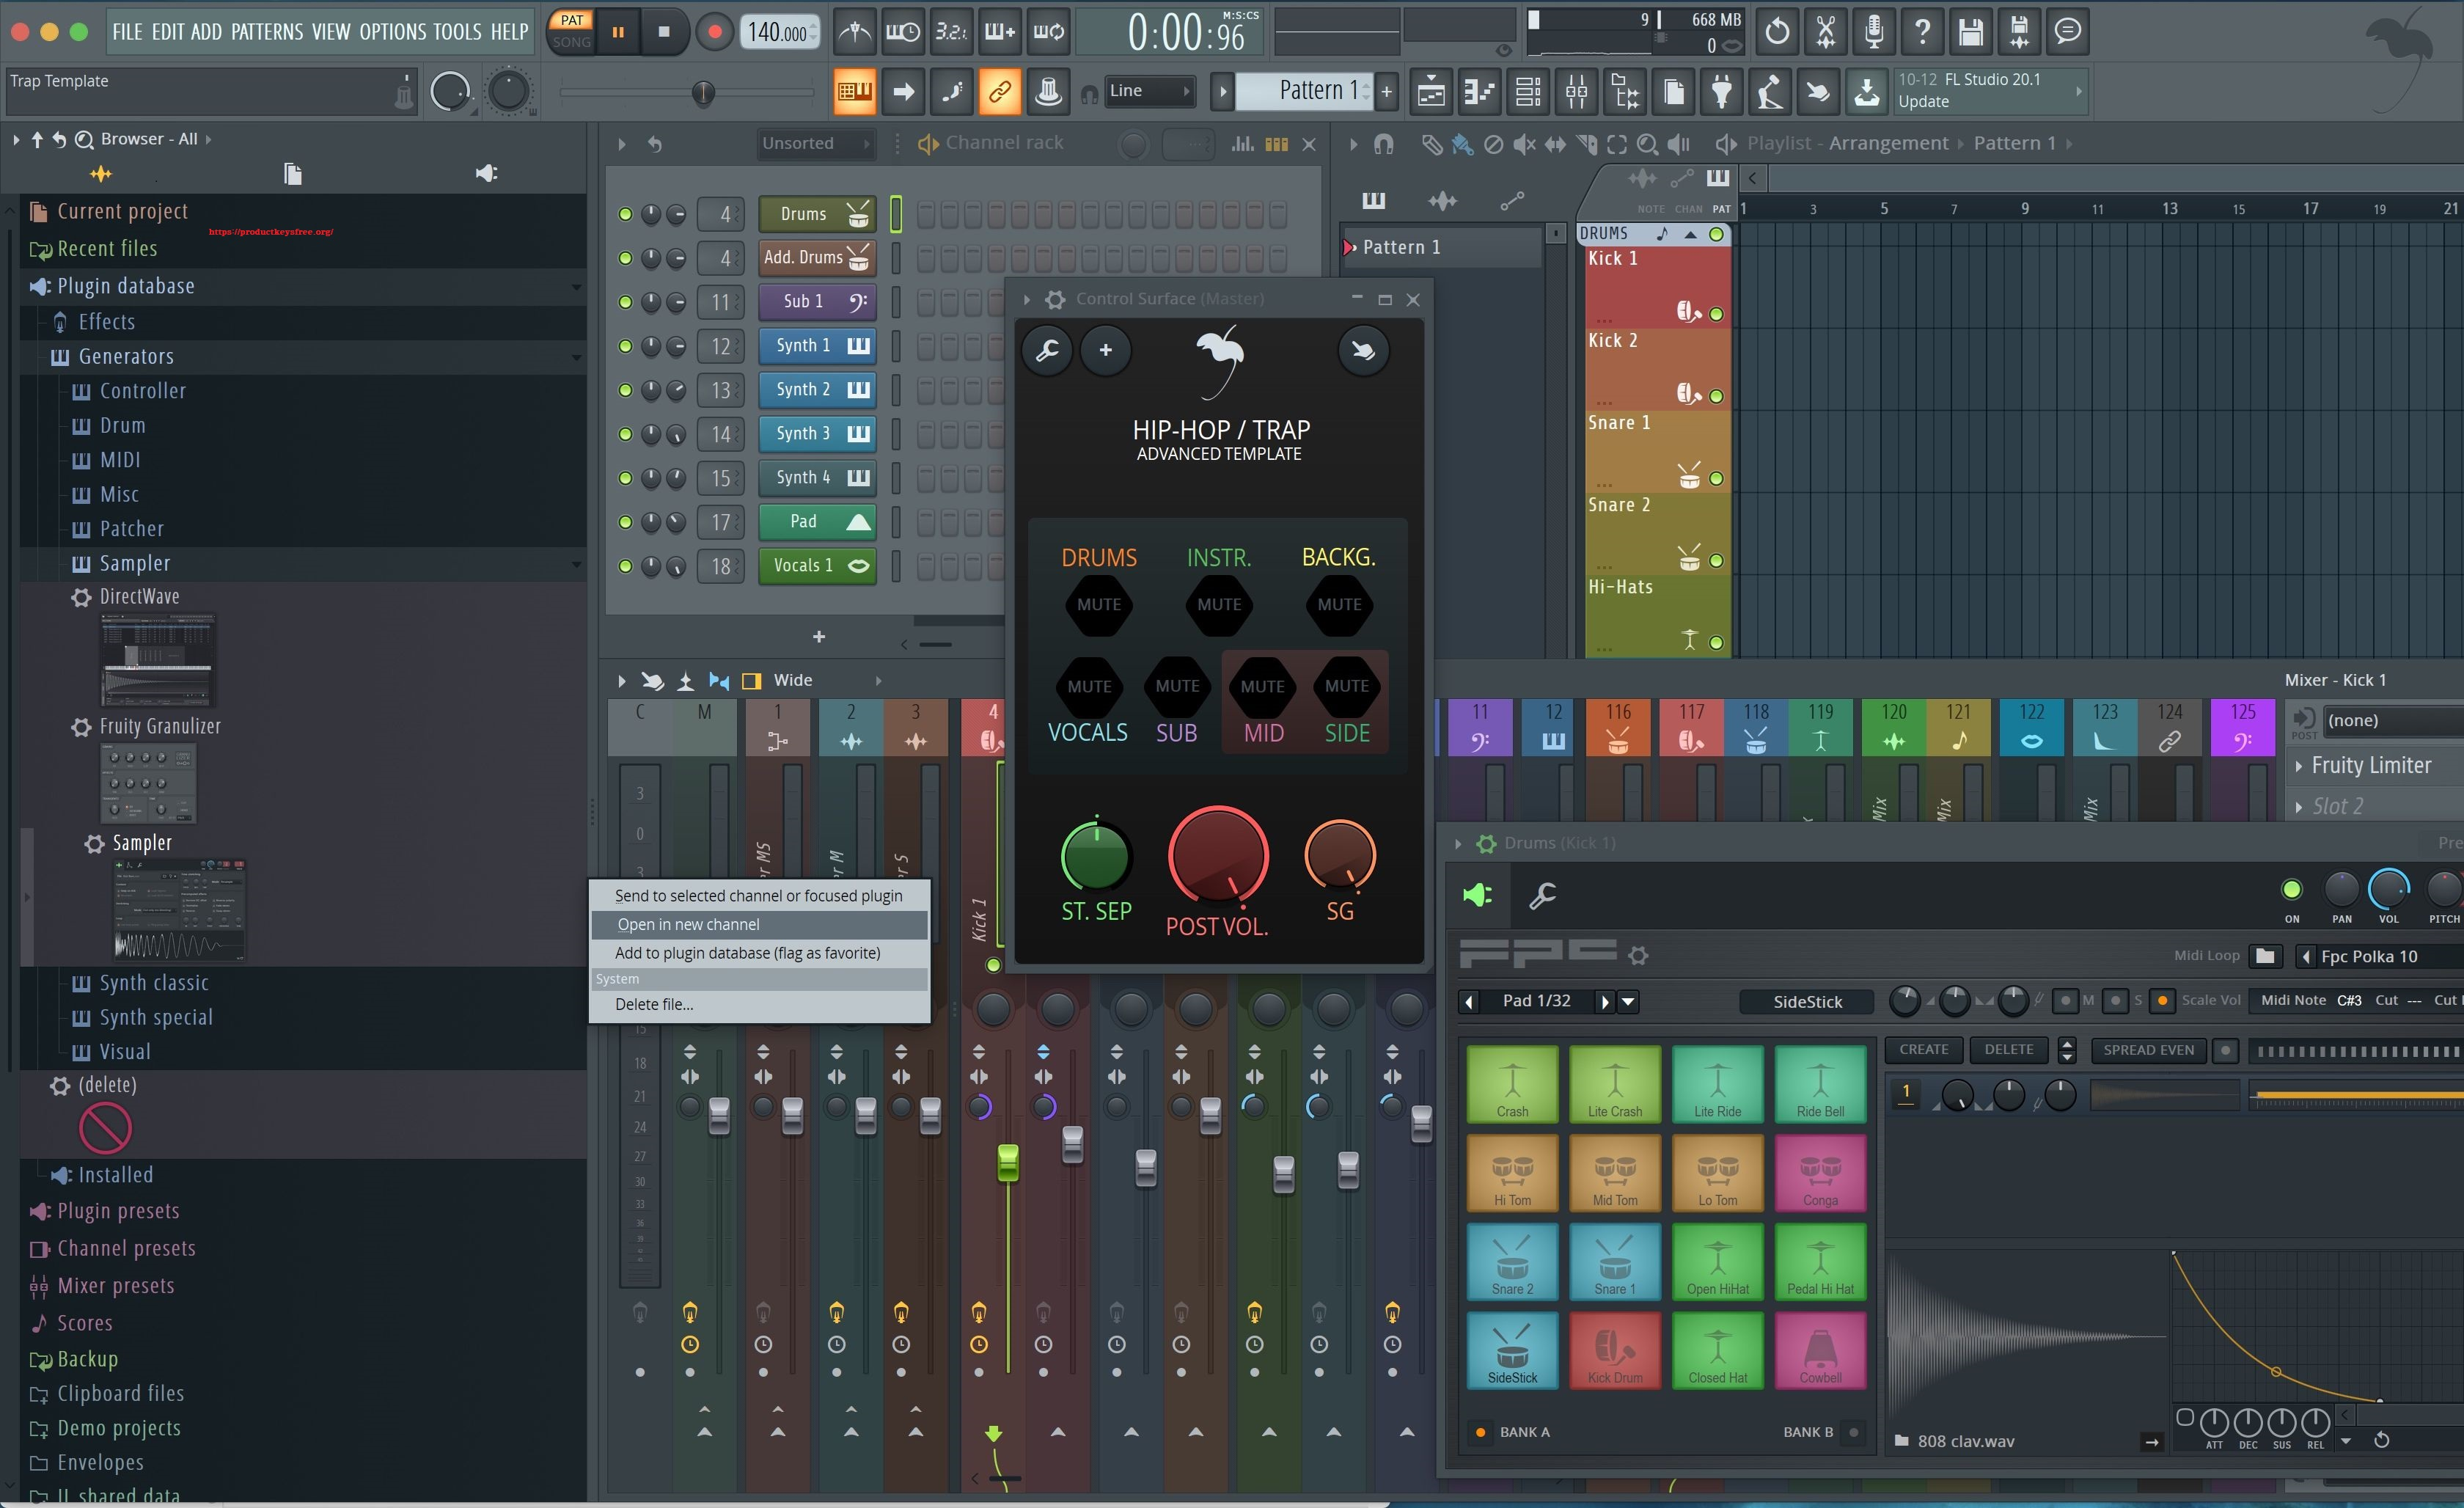 fl studio 20 reg key file download